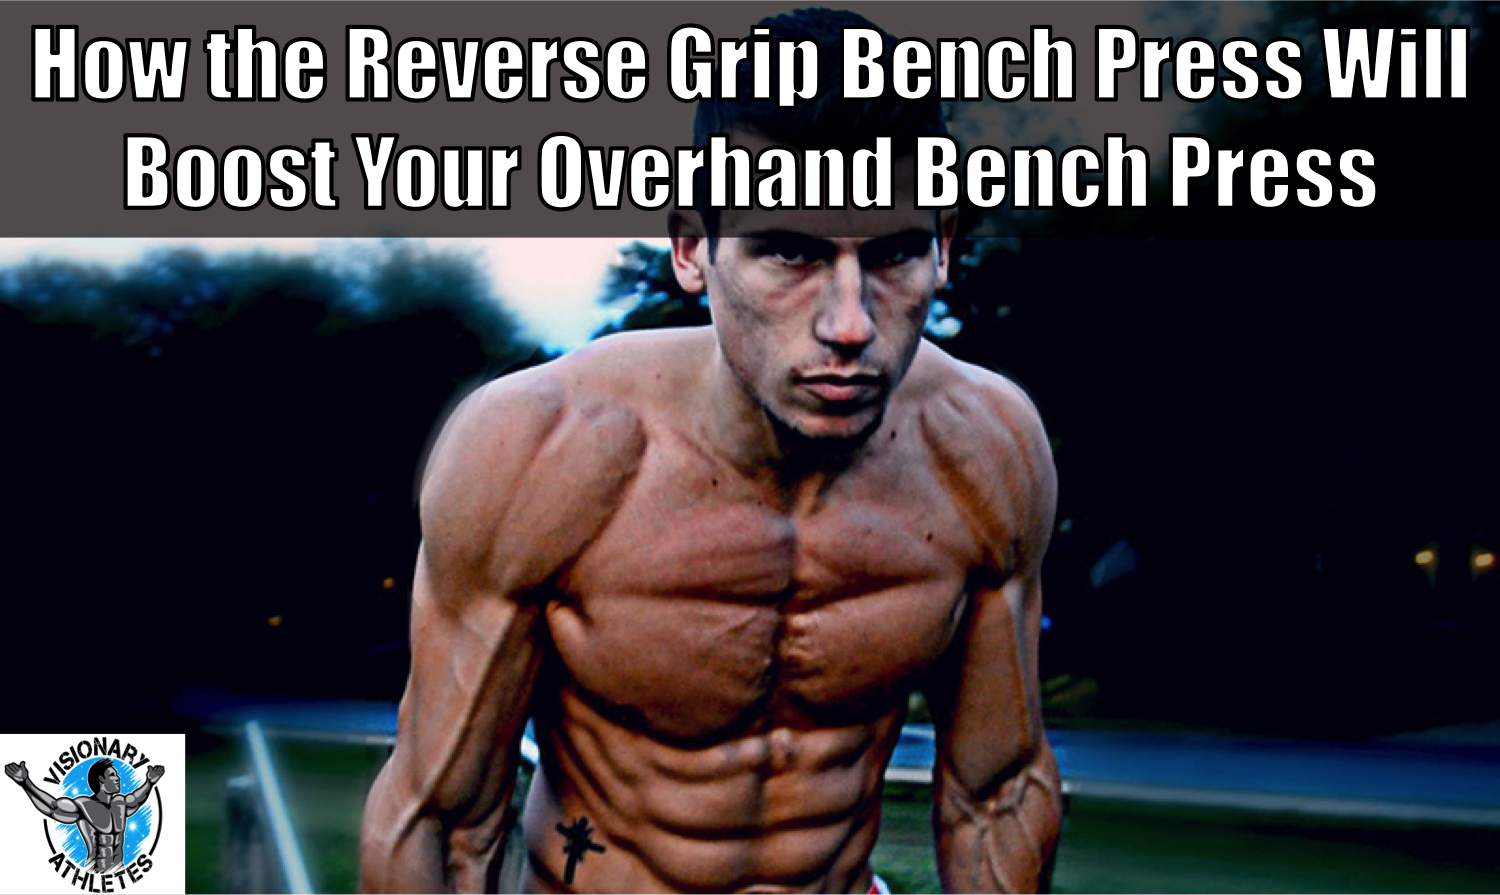 How The Reverse Grip Bench Press Can Give You A Better Bench